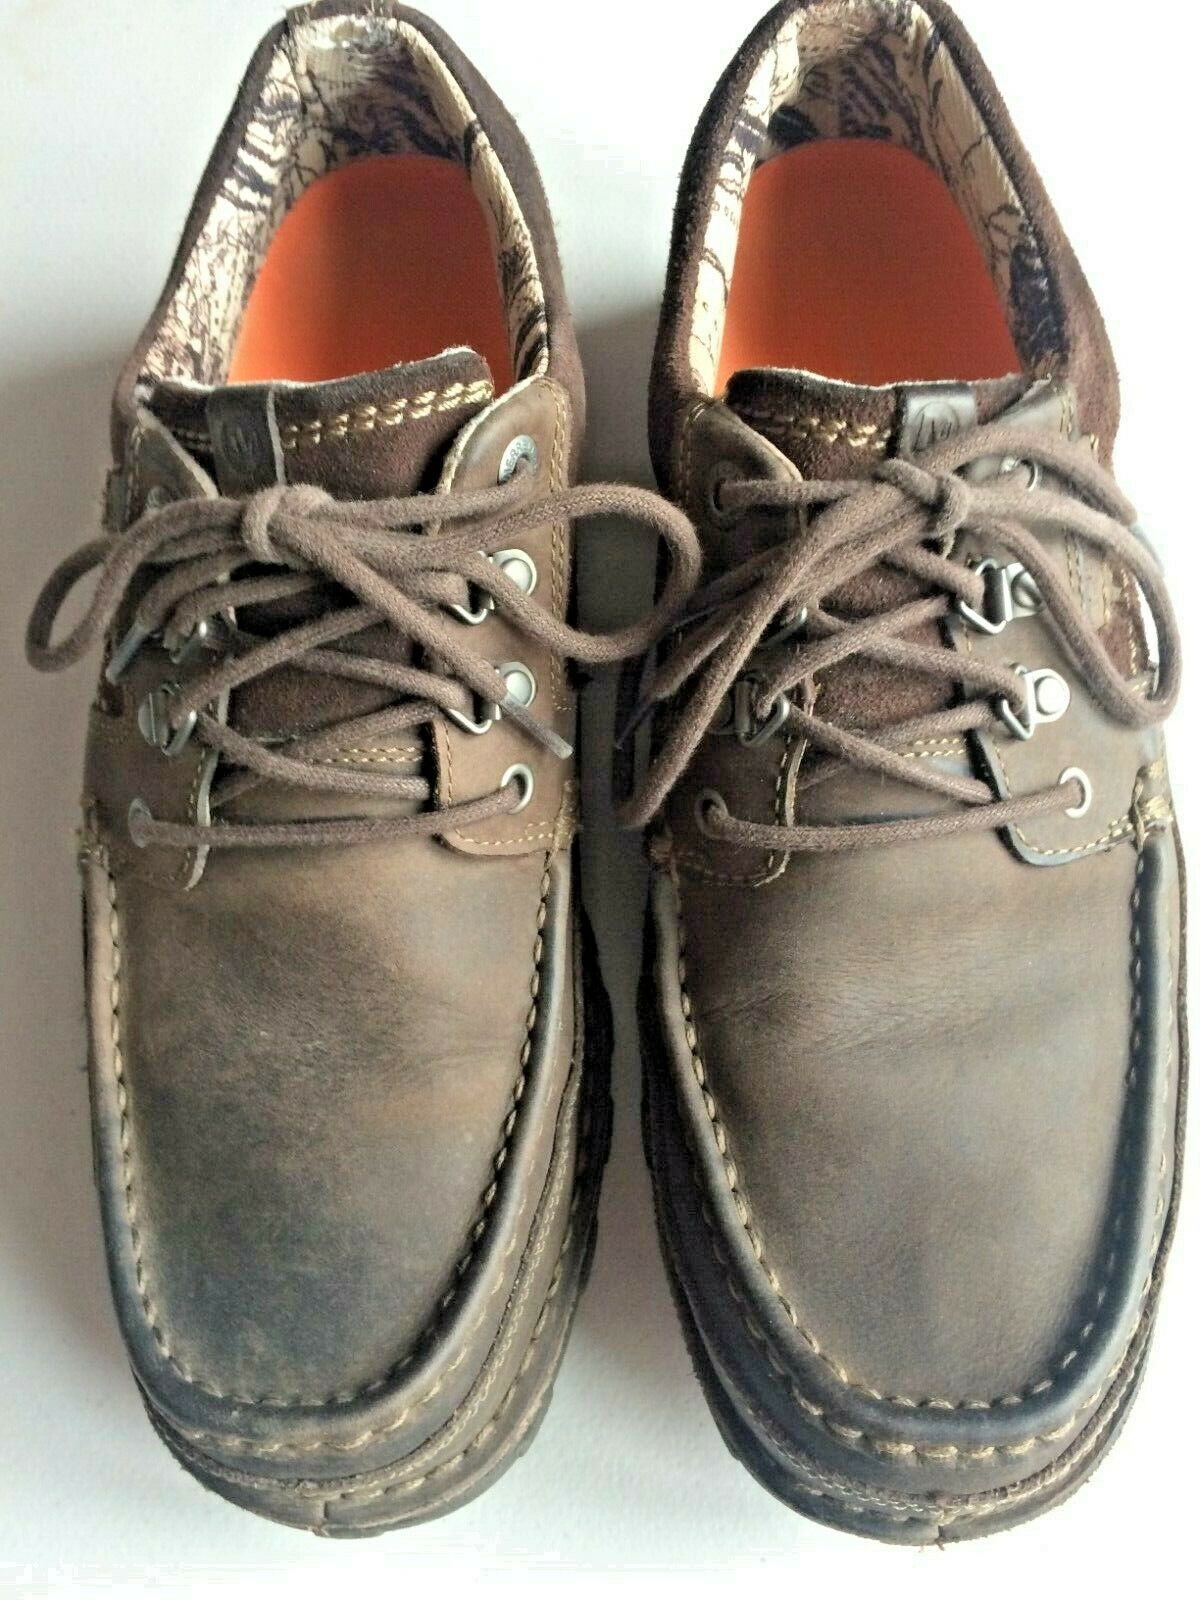 MERRELL Espresso Select DRY Performance Footwear Leather Suede shoes Mens